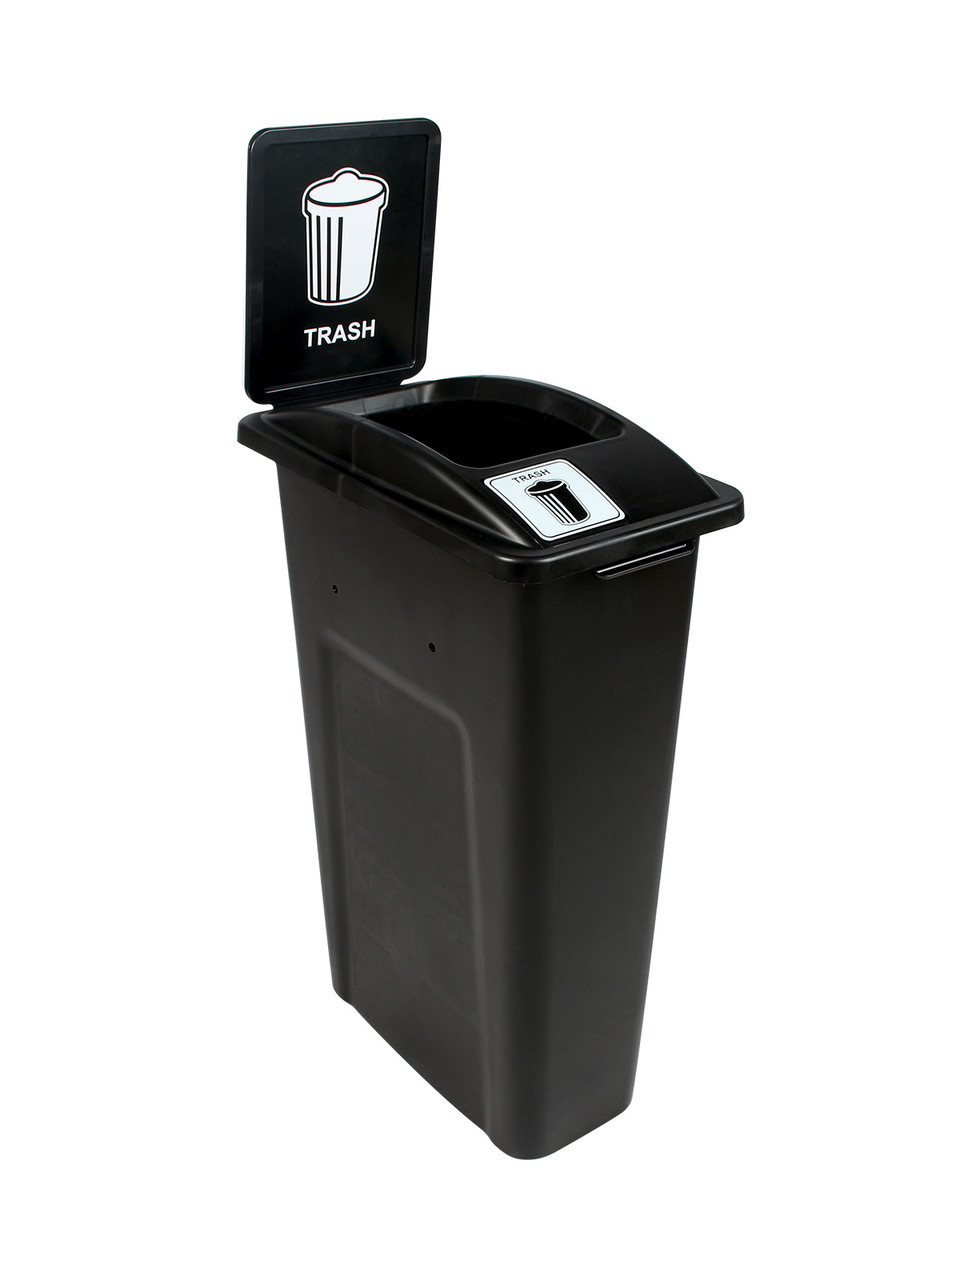 23 Gallon Black Skinny Simple Sort Trash Can with Sign (Trash, Open Top)